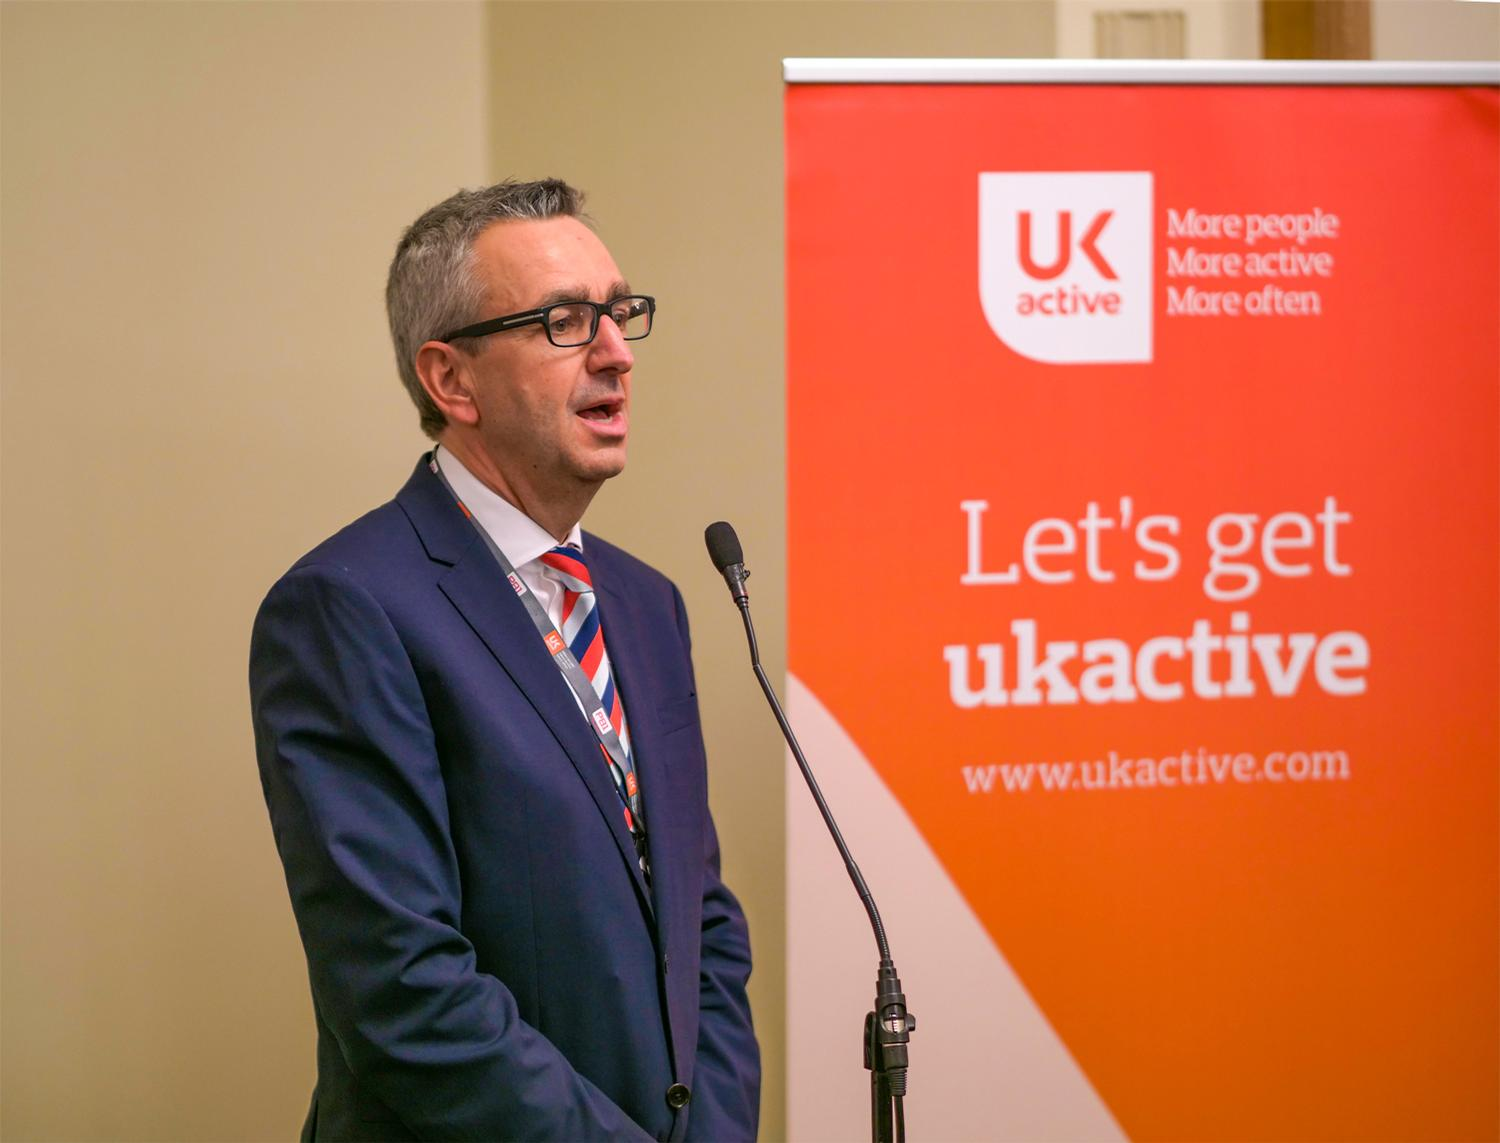 The event saw Sport England CEO Tim Hollingsworth give his maiden public speech